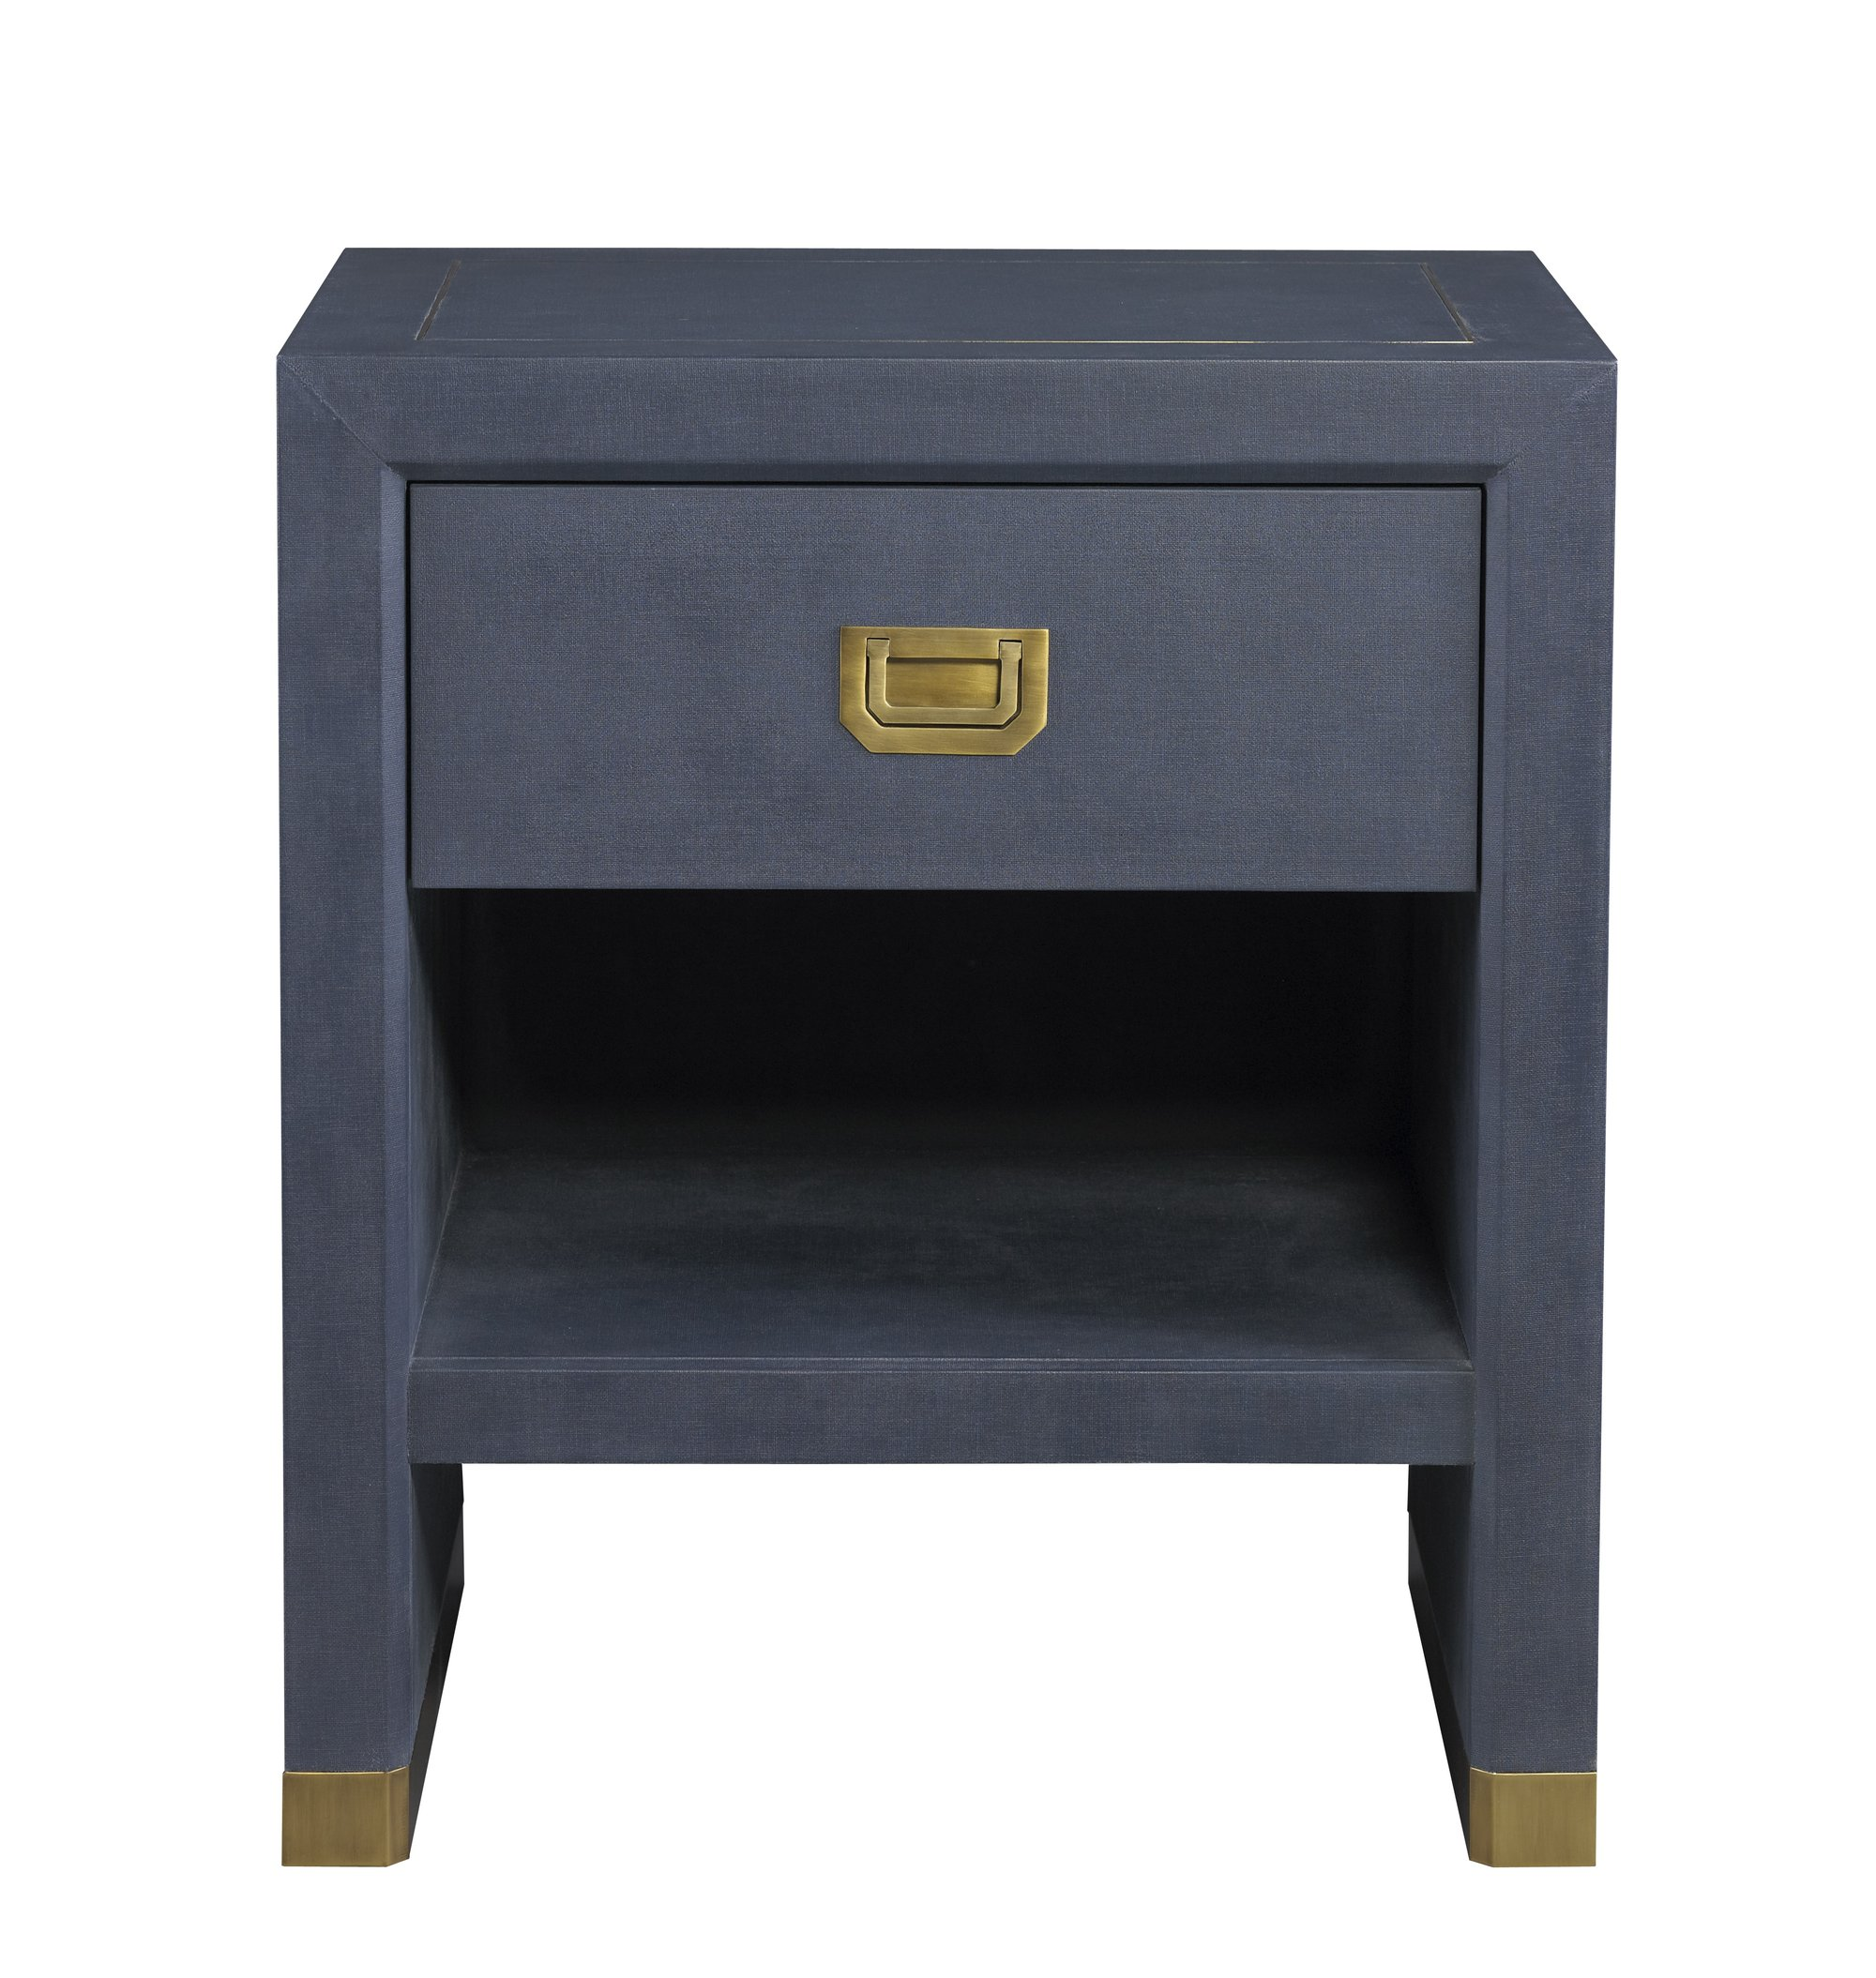 brendan side table lillian furnishings design navy blue end console round placement chaise lounge sofa ashley furniture small glass and wood coffee country french ethan allen fire